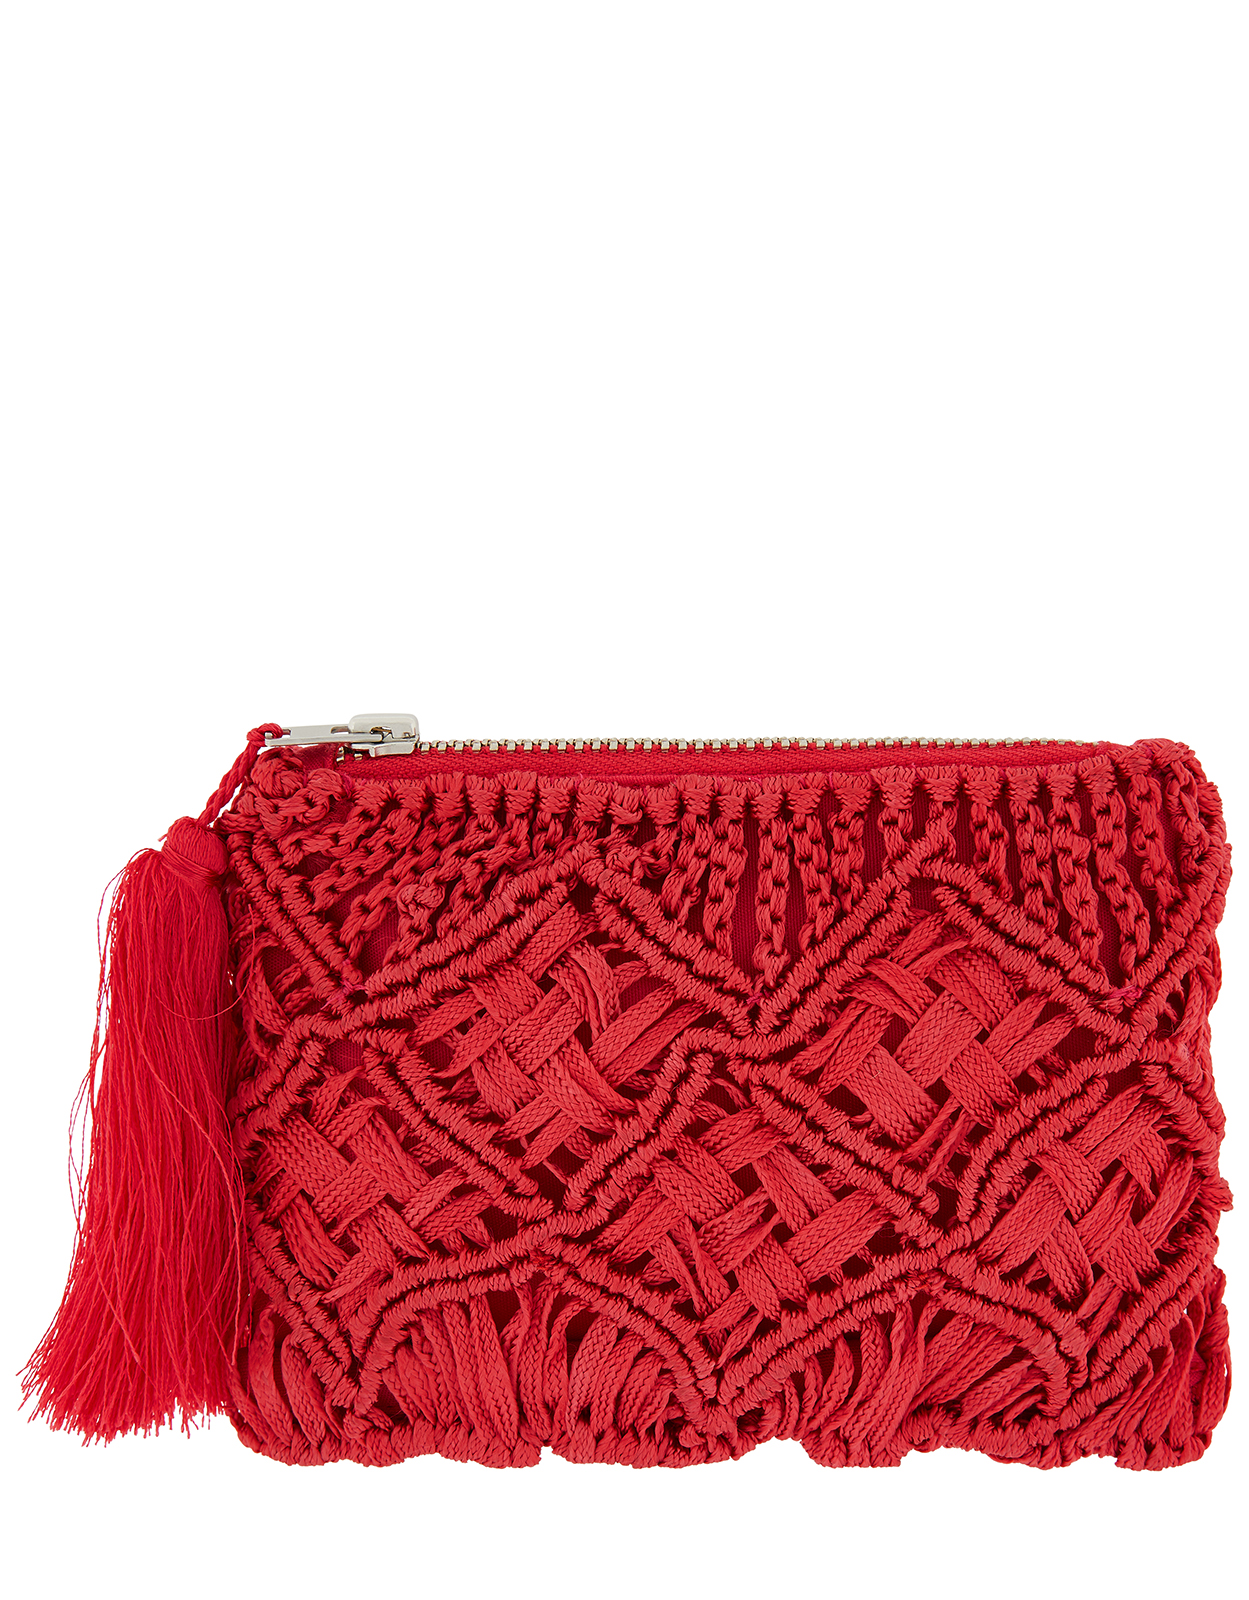 Monsoon Macramé Tassel Purse